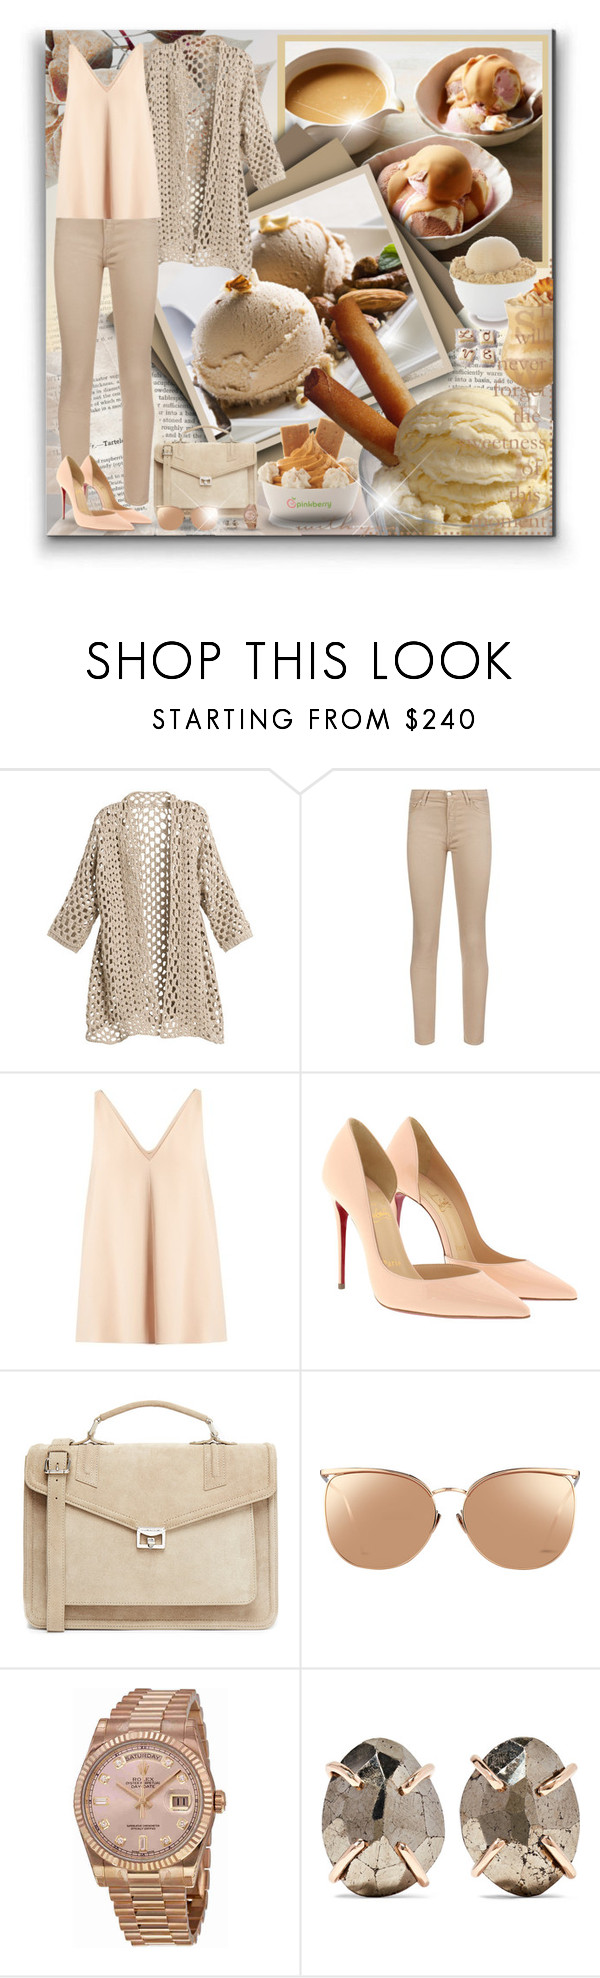 """I Is For... (Ice Cream)! - Contest!"" by asia-12 ❤ liked on Polyvore featuring Disney, 7 For All Mankind, STELLA McCARTNEY, Christian Louboutin, J.Lindeberg, Linda Farrow, Rolex and Melissa Joy Manning"